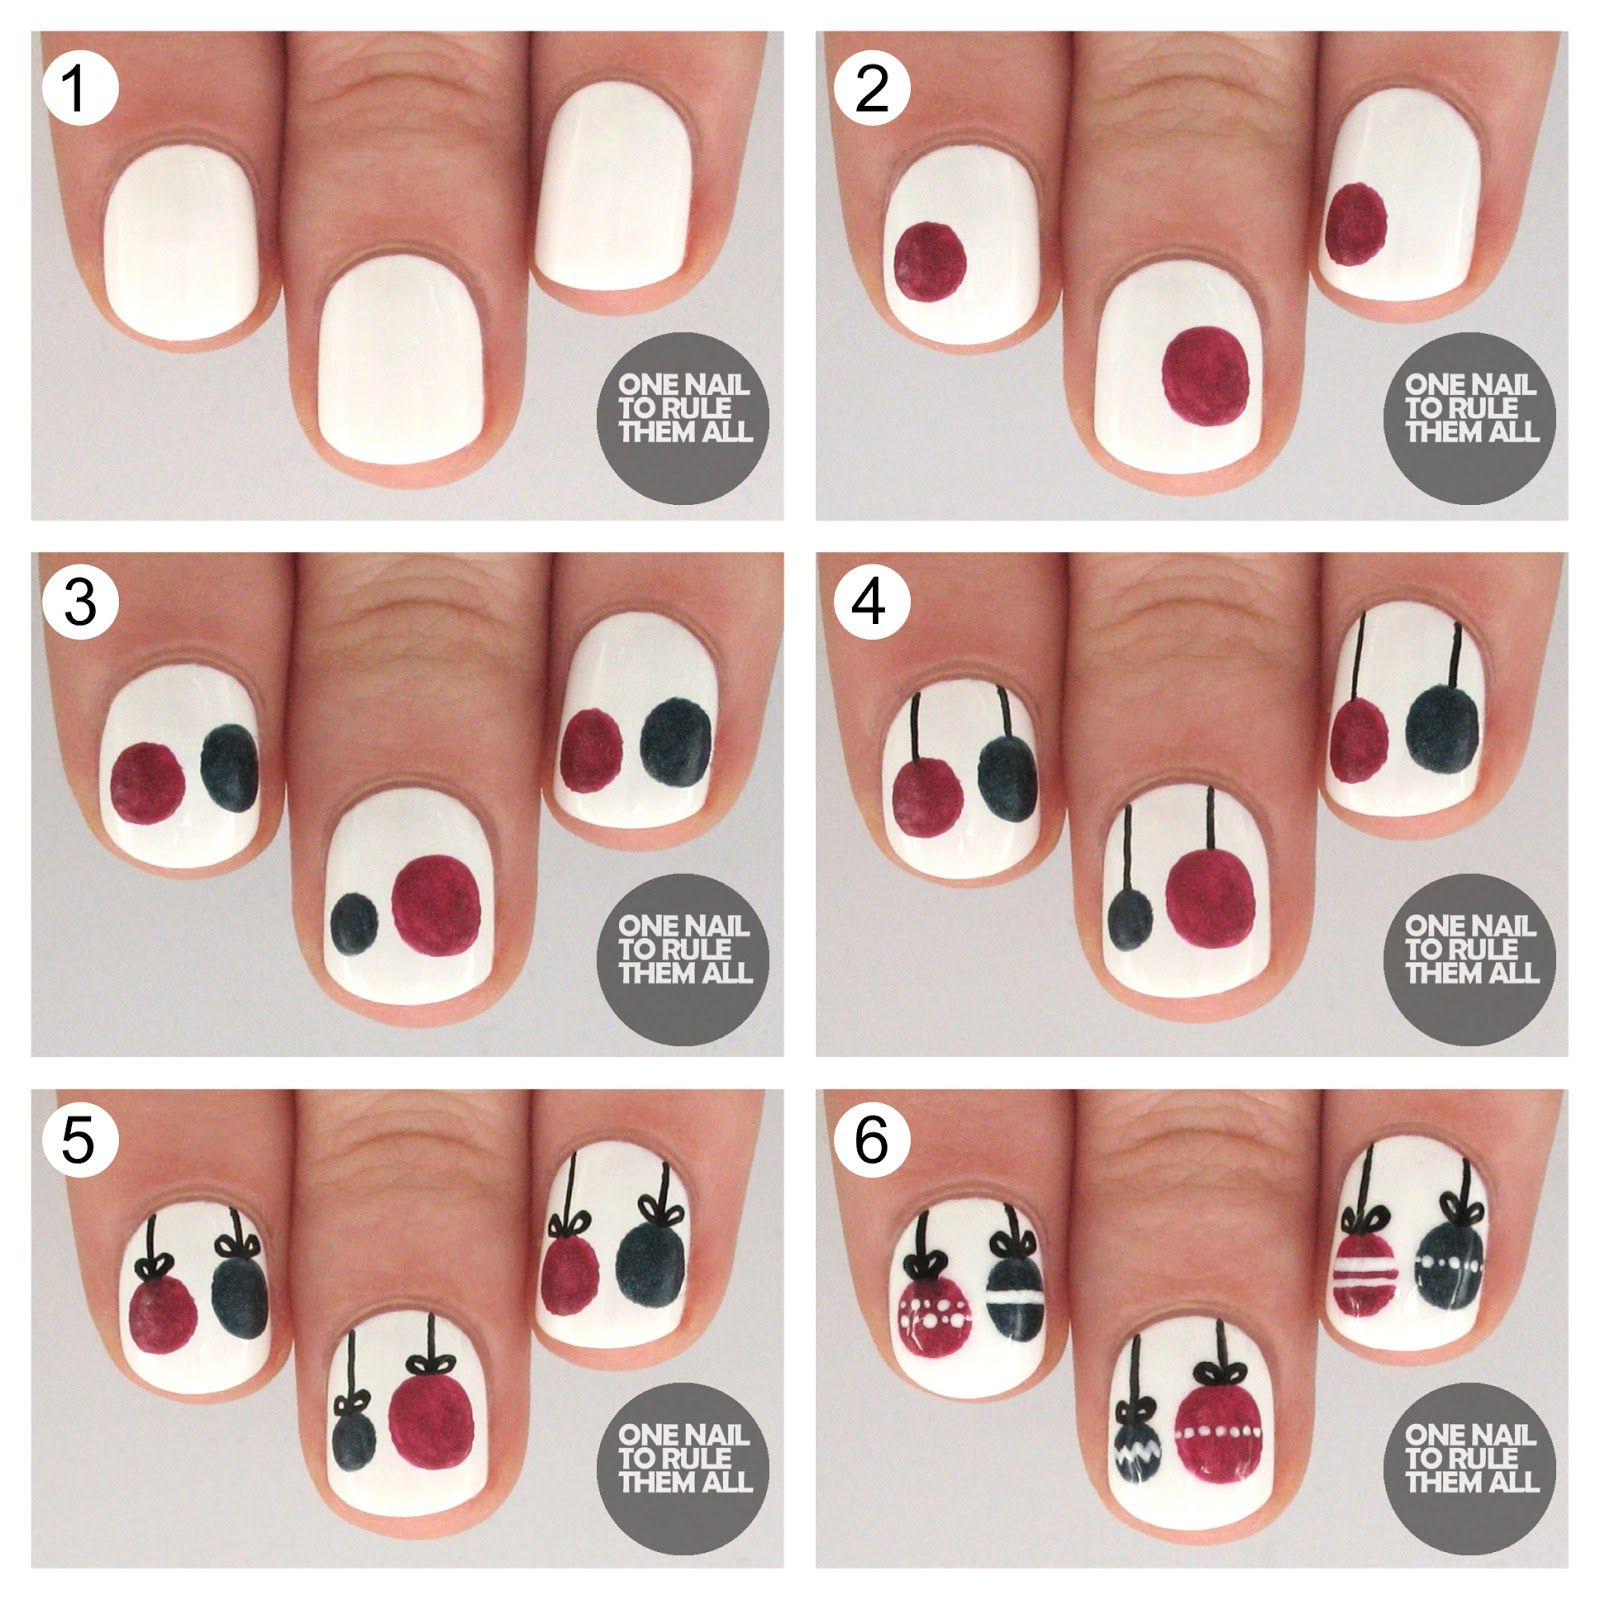 Tutorial tuesday christmas baubles for barry m one nail to rule tutorial tuesday christmas baubles for barry m one nail to rule them all prinsesfo Image collections